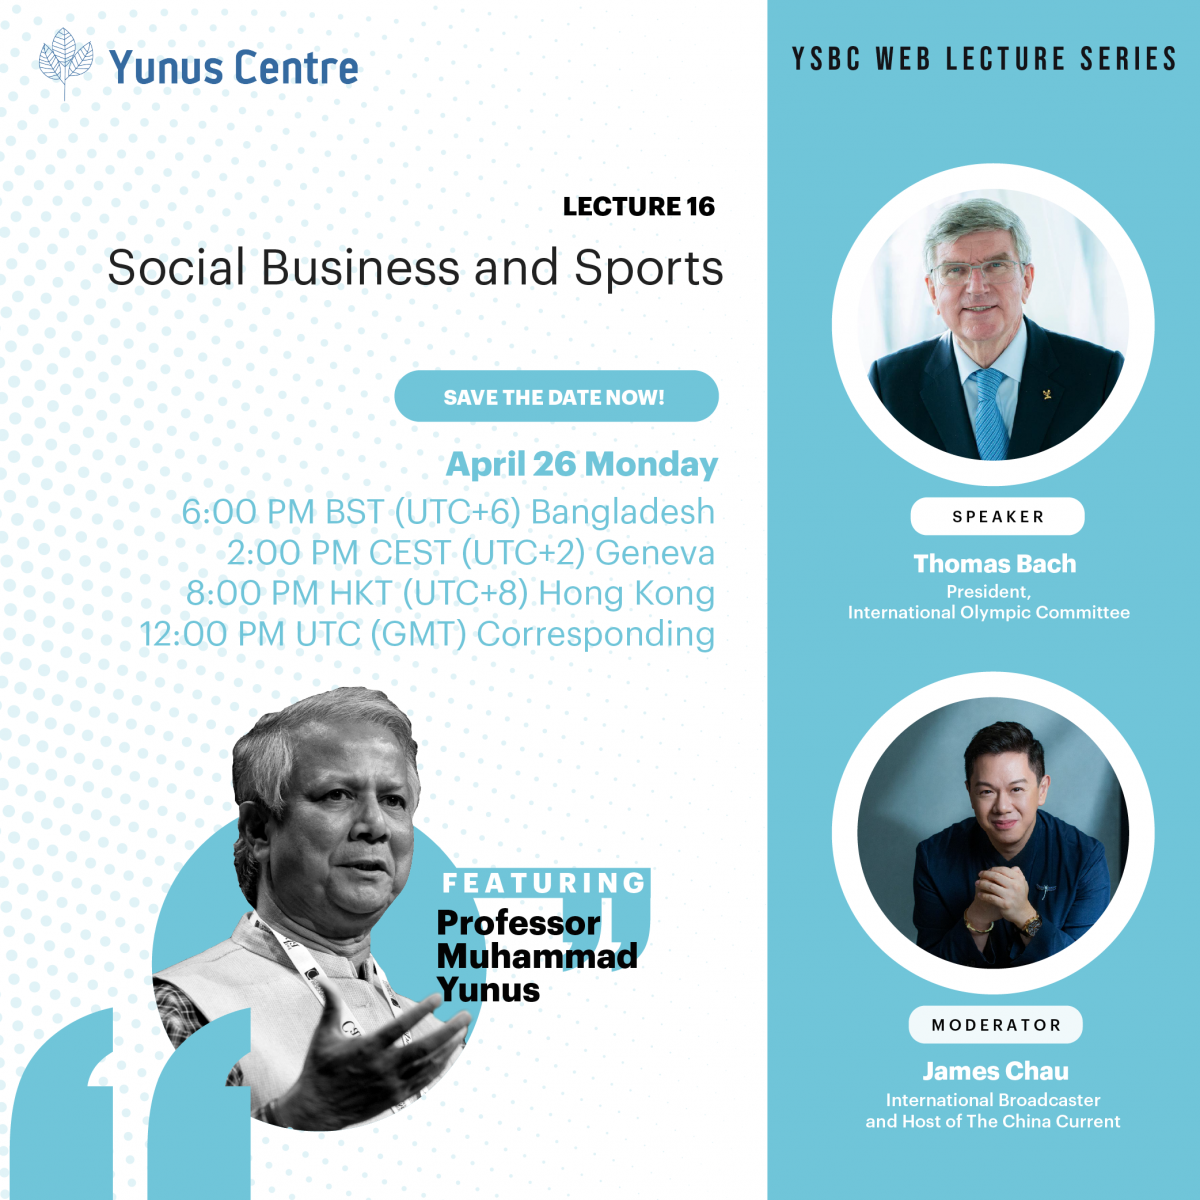 YSBC Web Lecture Series - Lecture#16: Social Business and Sports